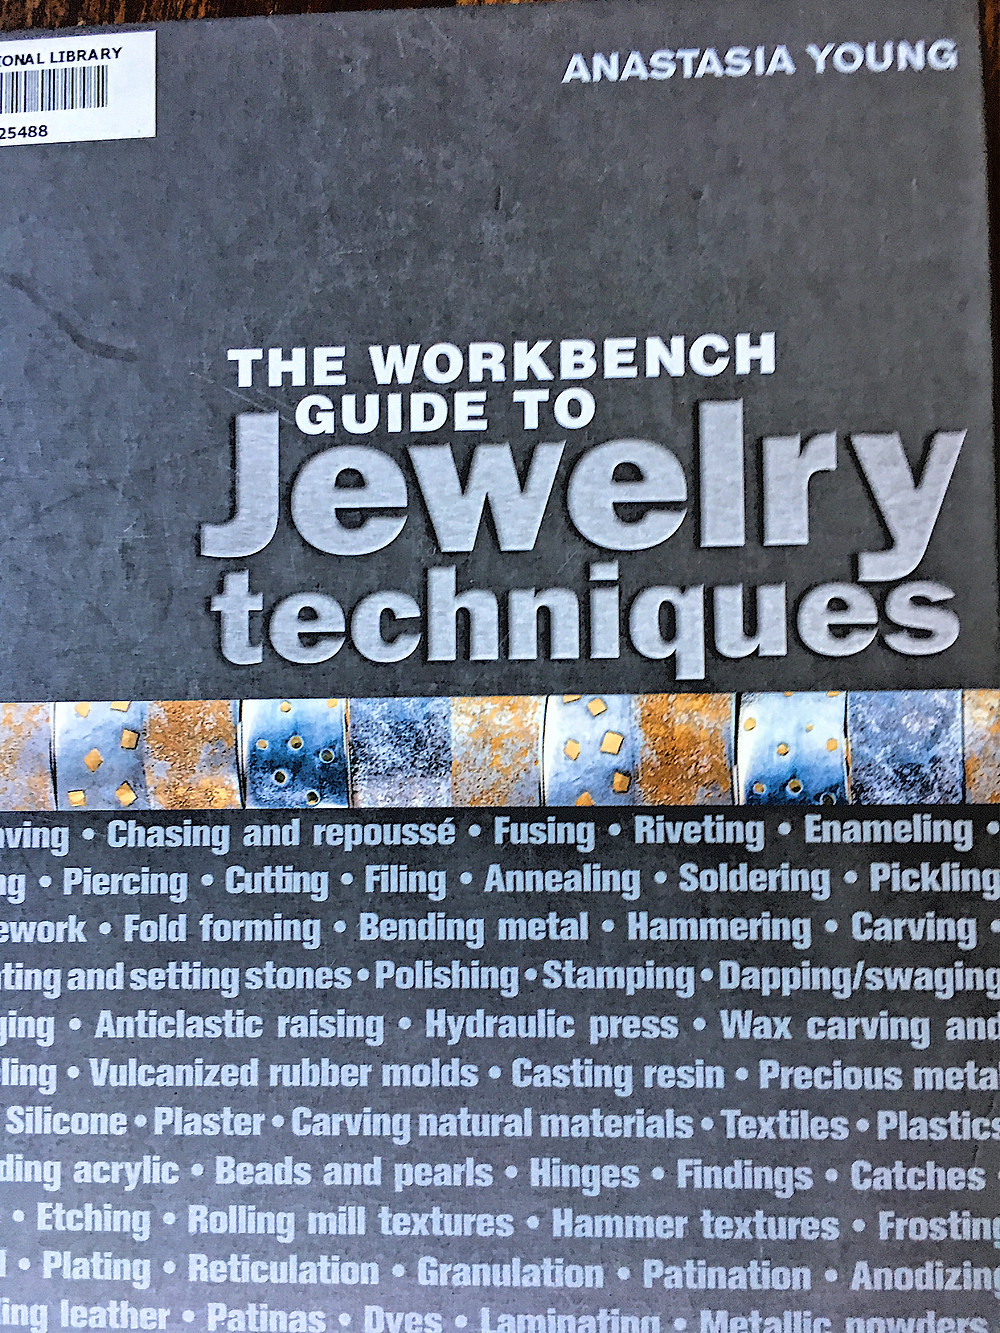 Book cover - Workbench Guide to Jewelry Techniques